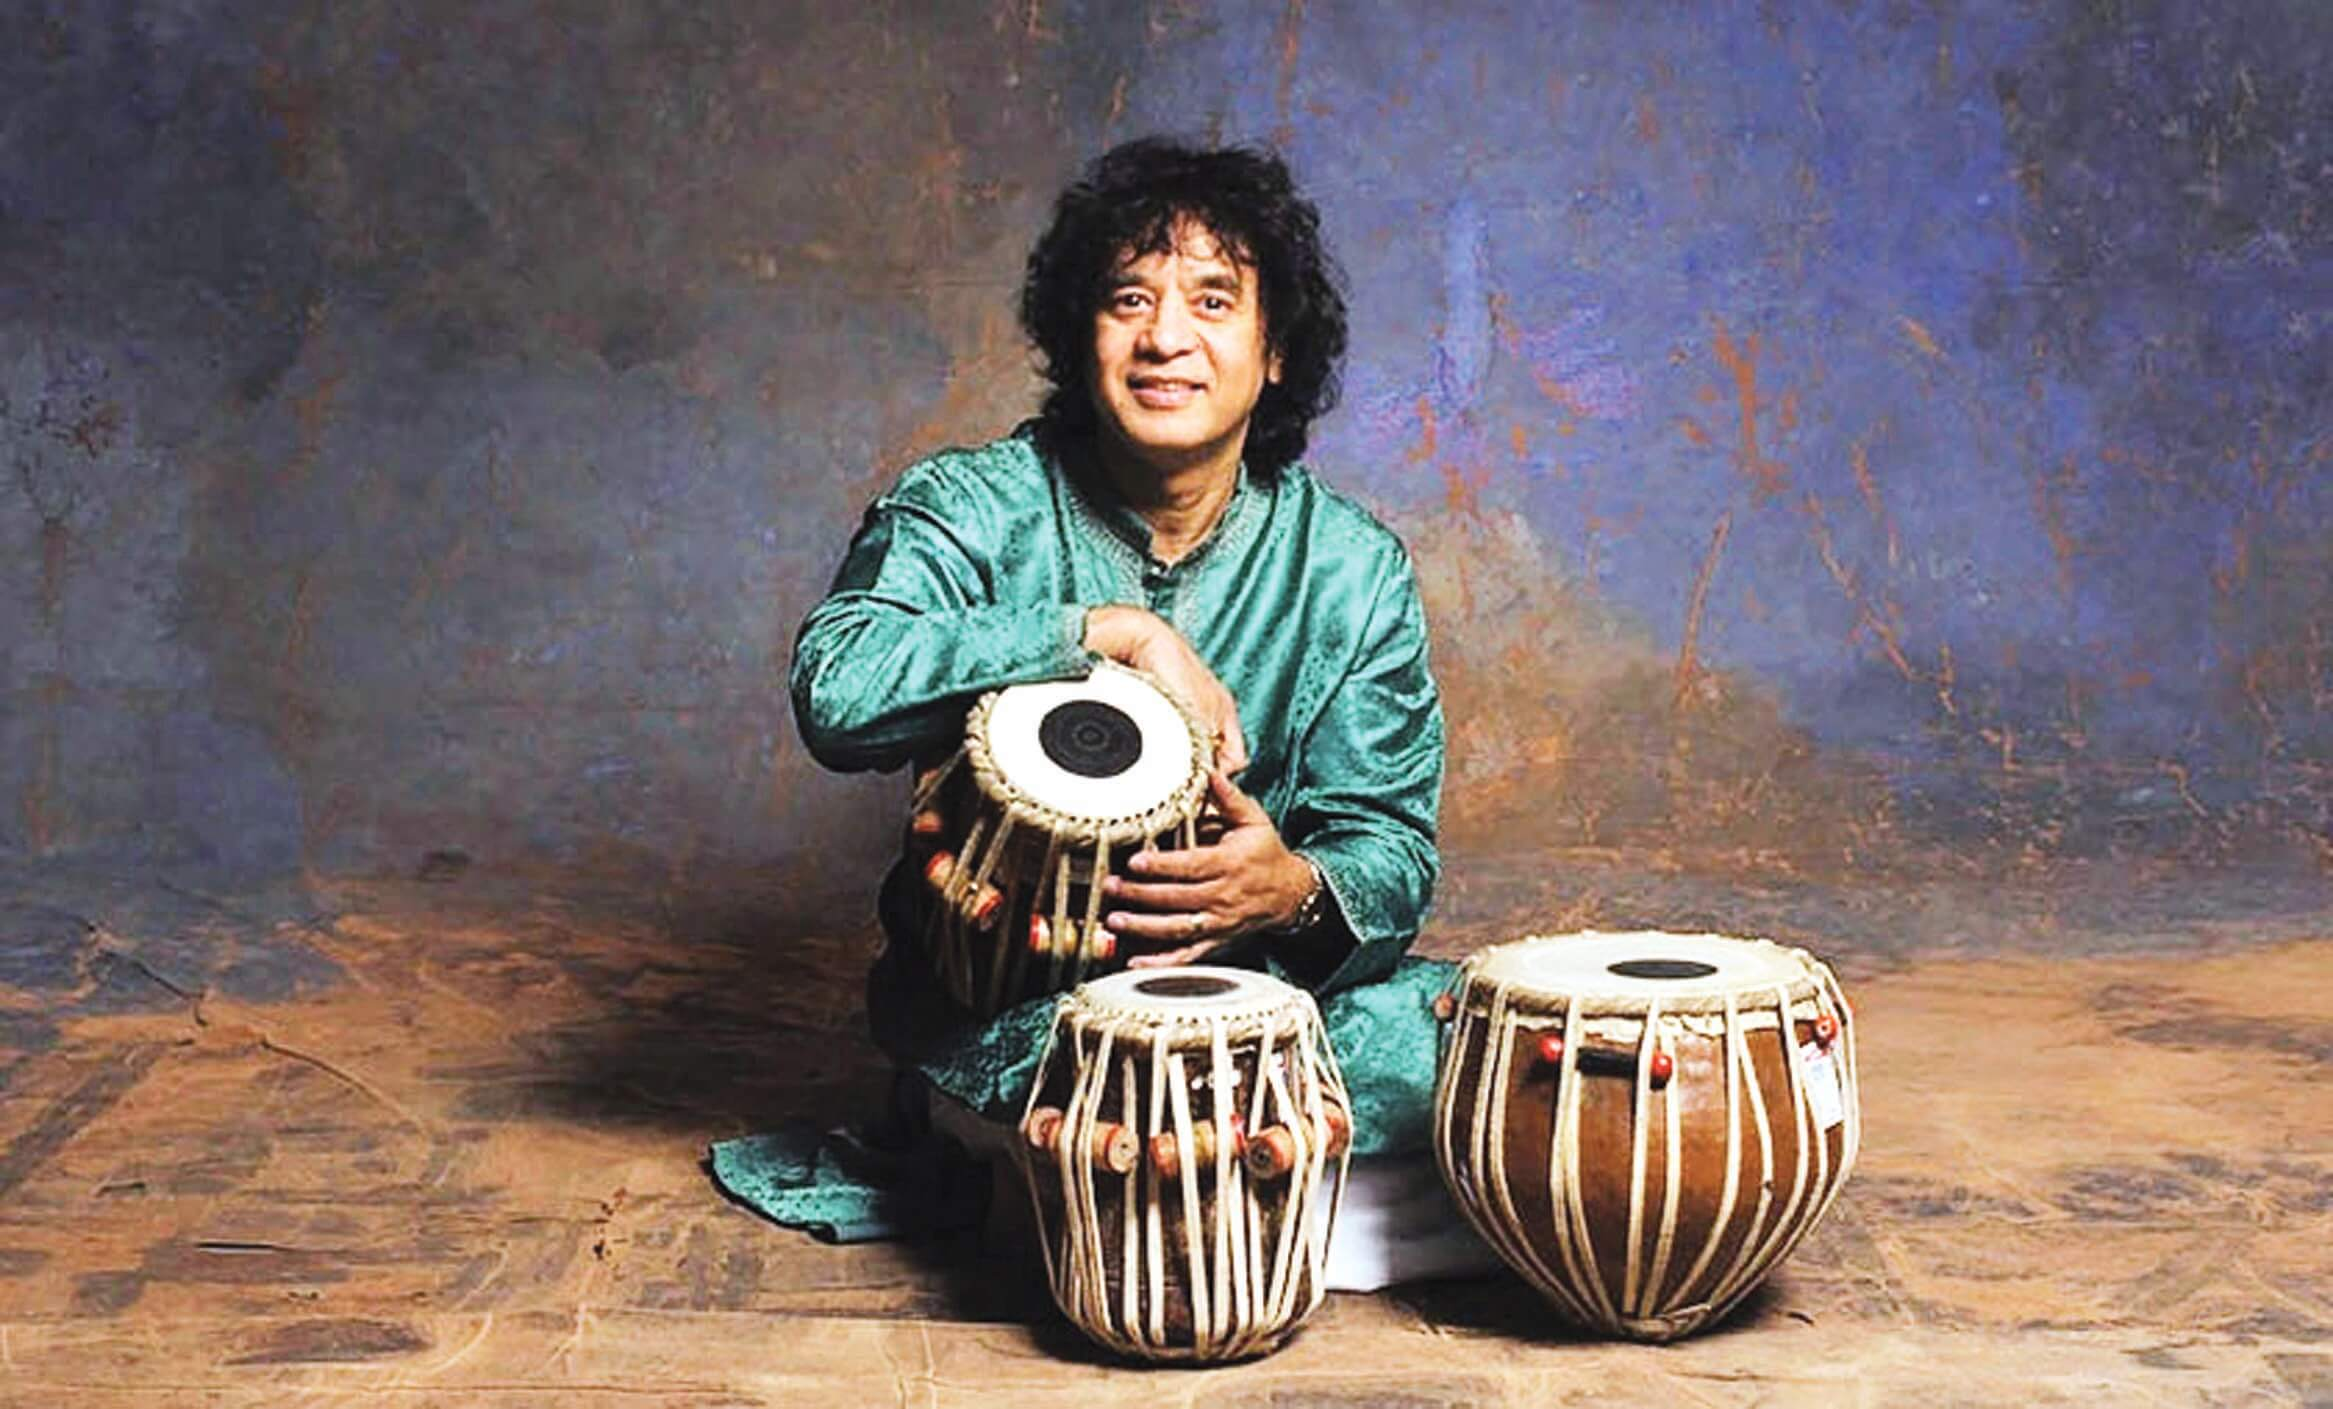 Tabla has been my mate since I was a baby: Zakir Hussain